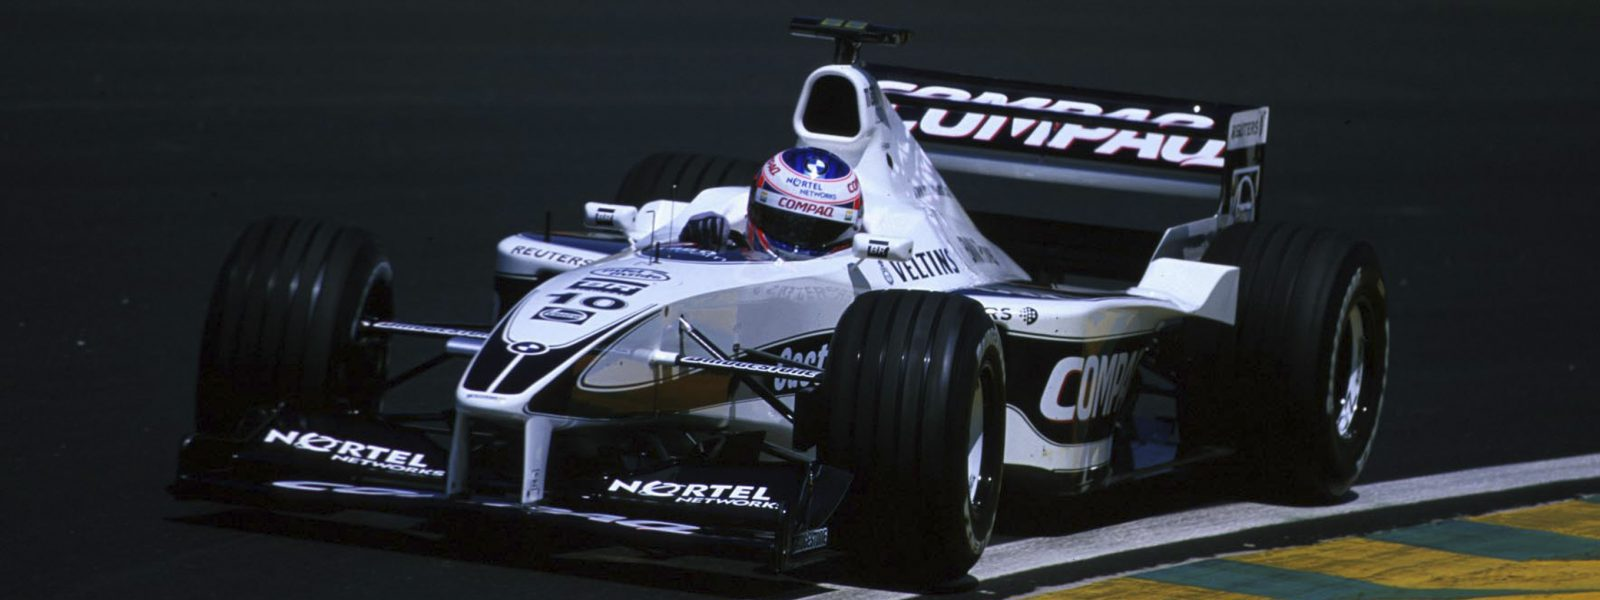 Motorsport / Formel 1: GP Brasilien 2000, Jenson BUTTON / ENG ( Williams - BMW ) , www.hoch-zwei.net, copyright: HOCH ZWEI